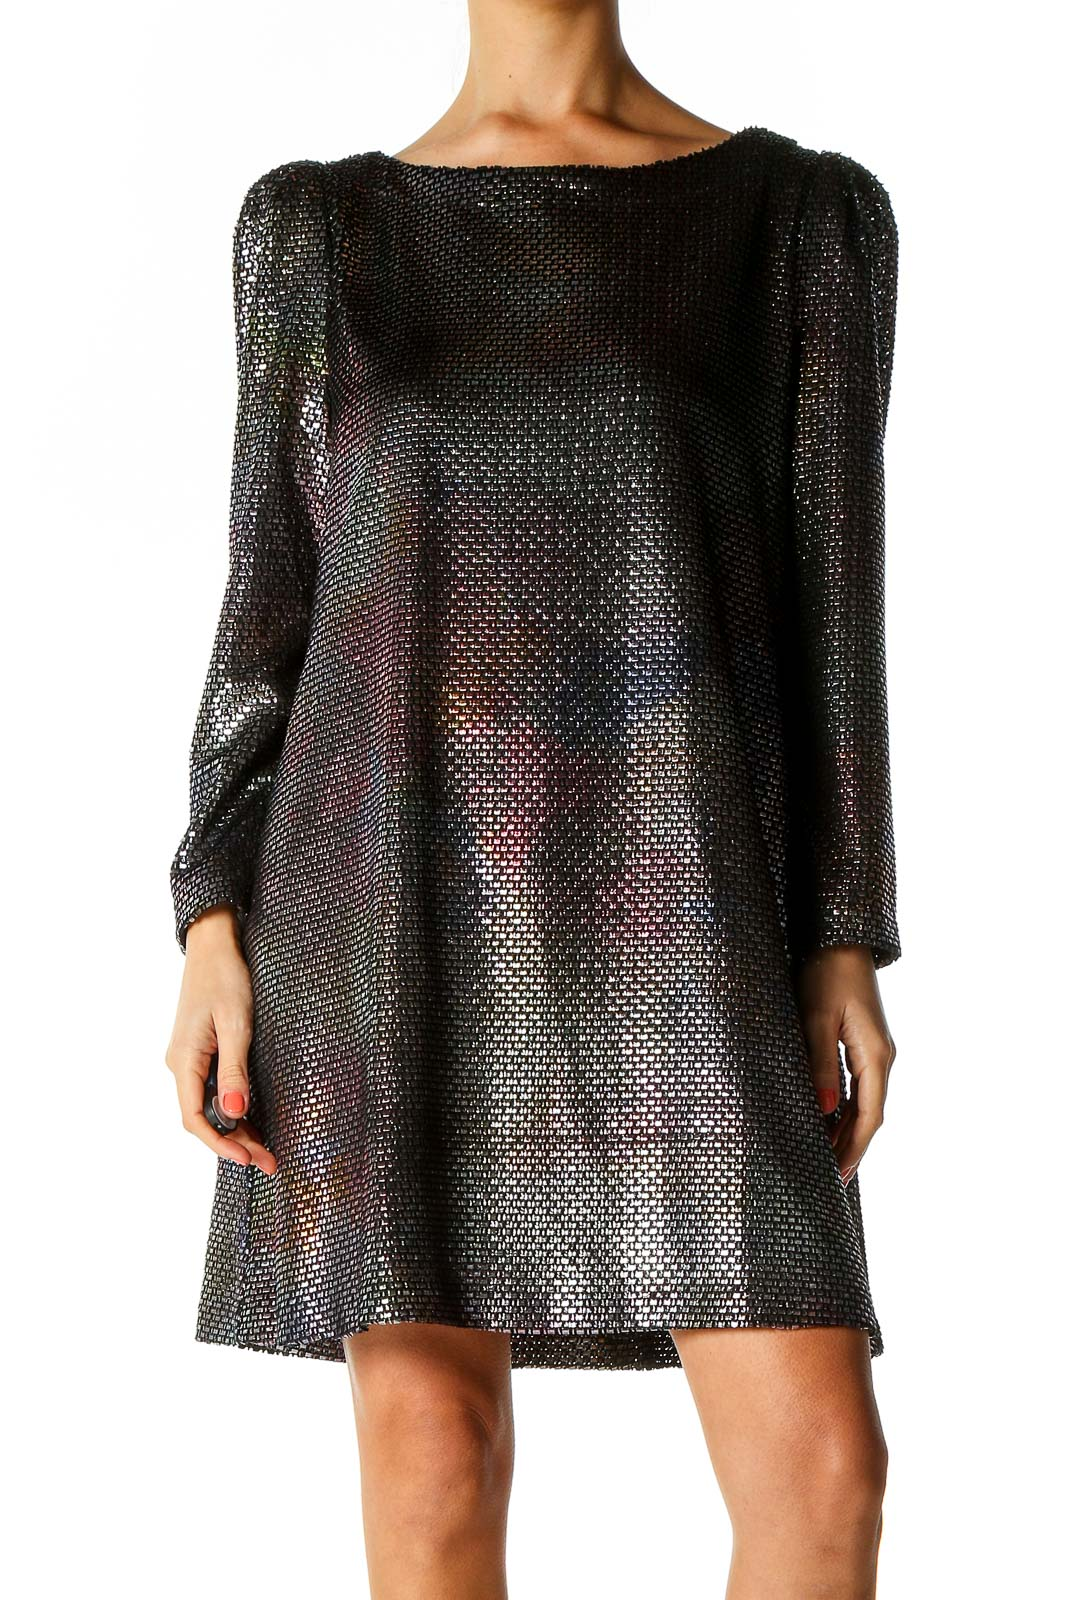 Black Textured Party Wear Dress Front